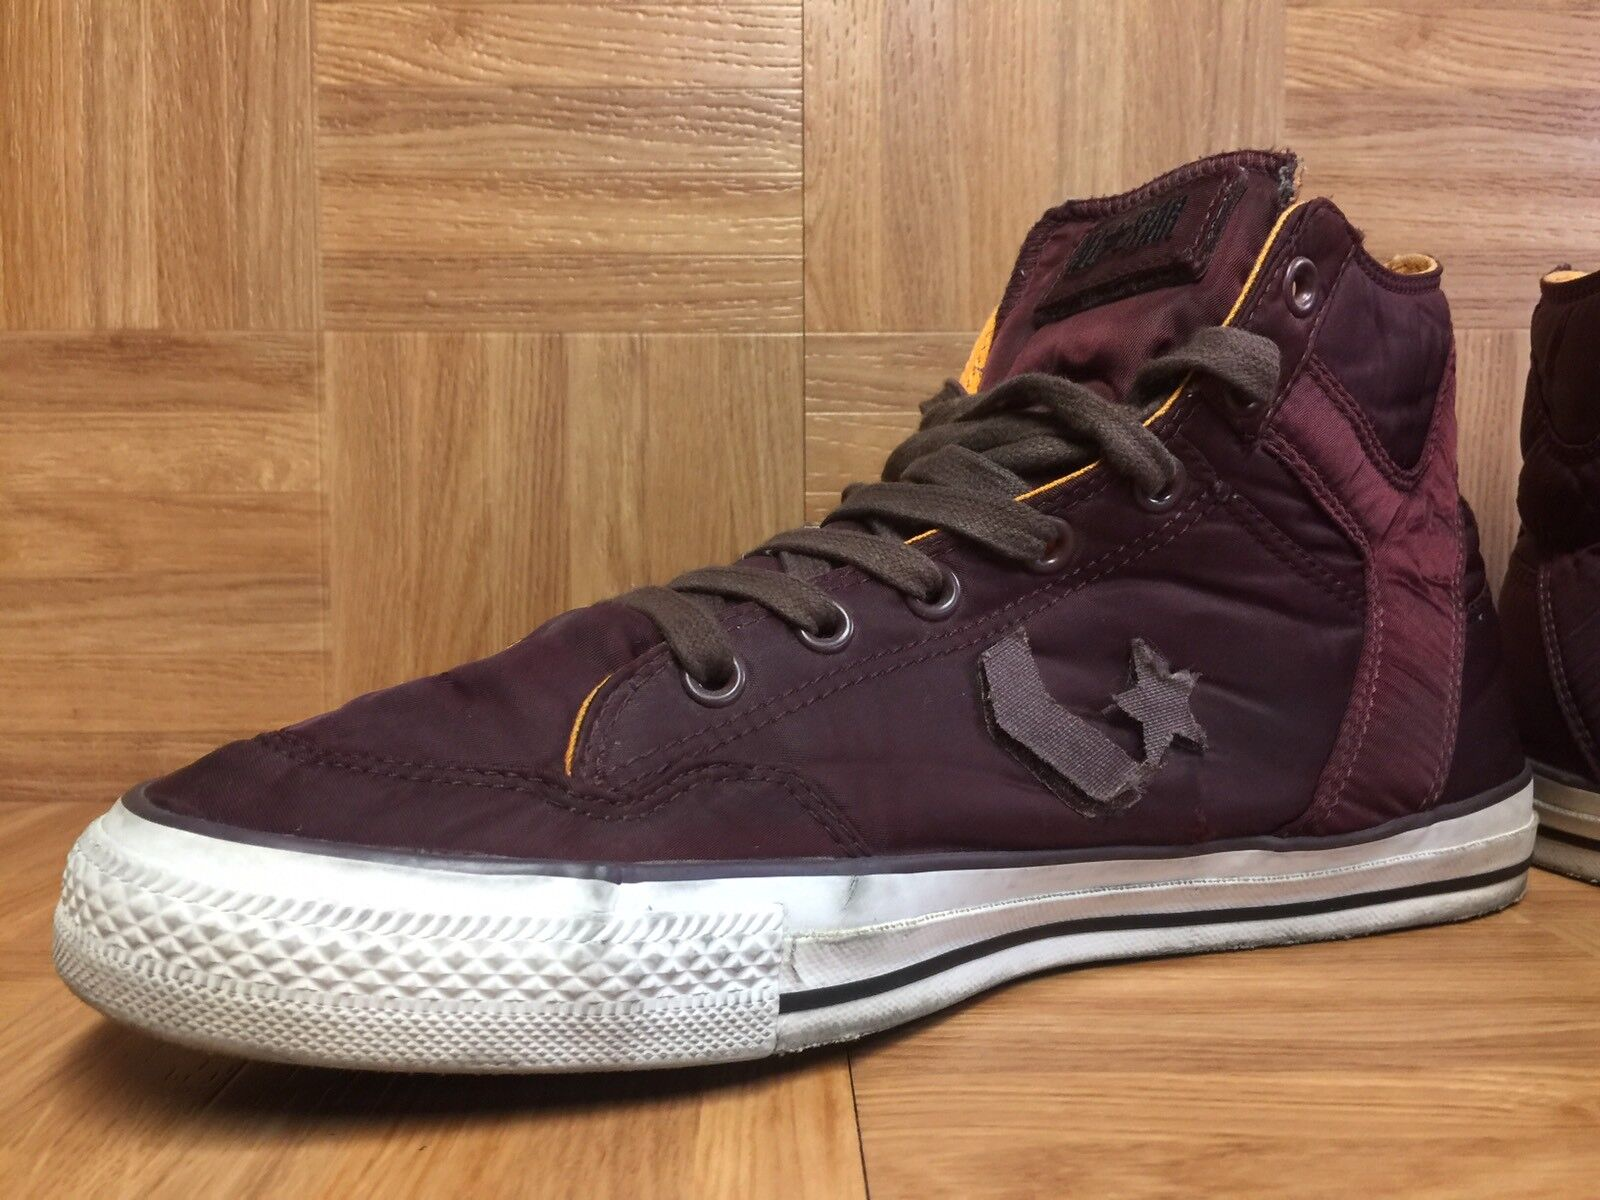 RARE? Converse Undefeated Ballistic Star Player Sz High Red Leather Boots Sz Player 12 0b0616